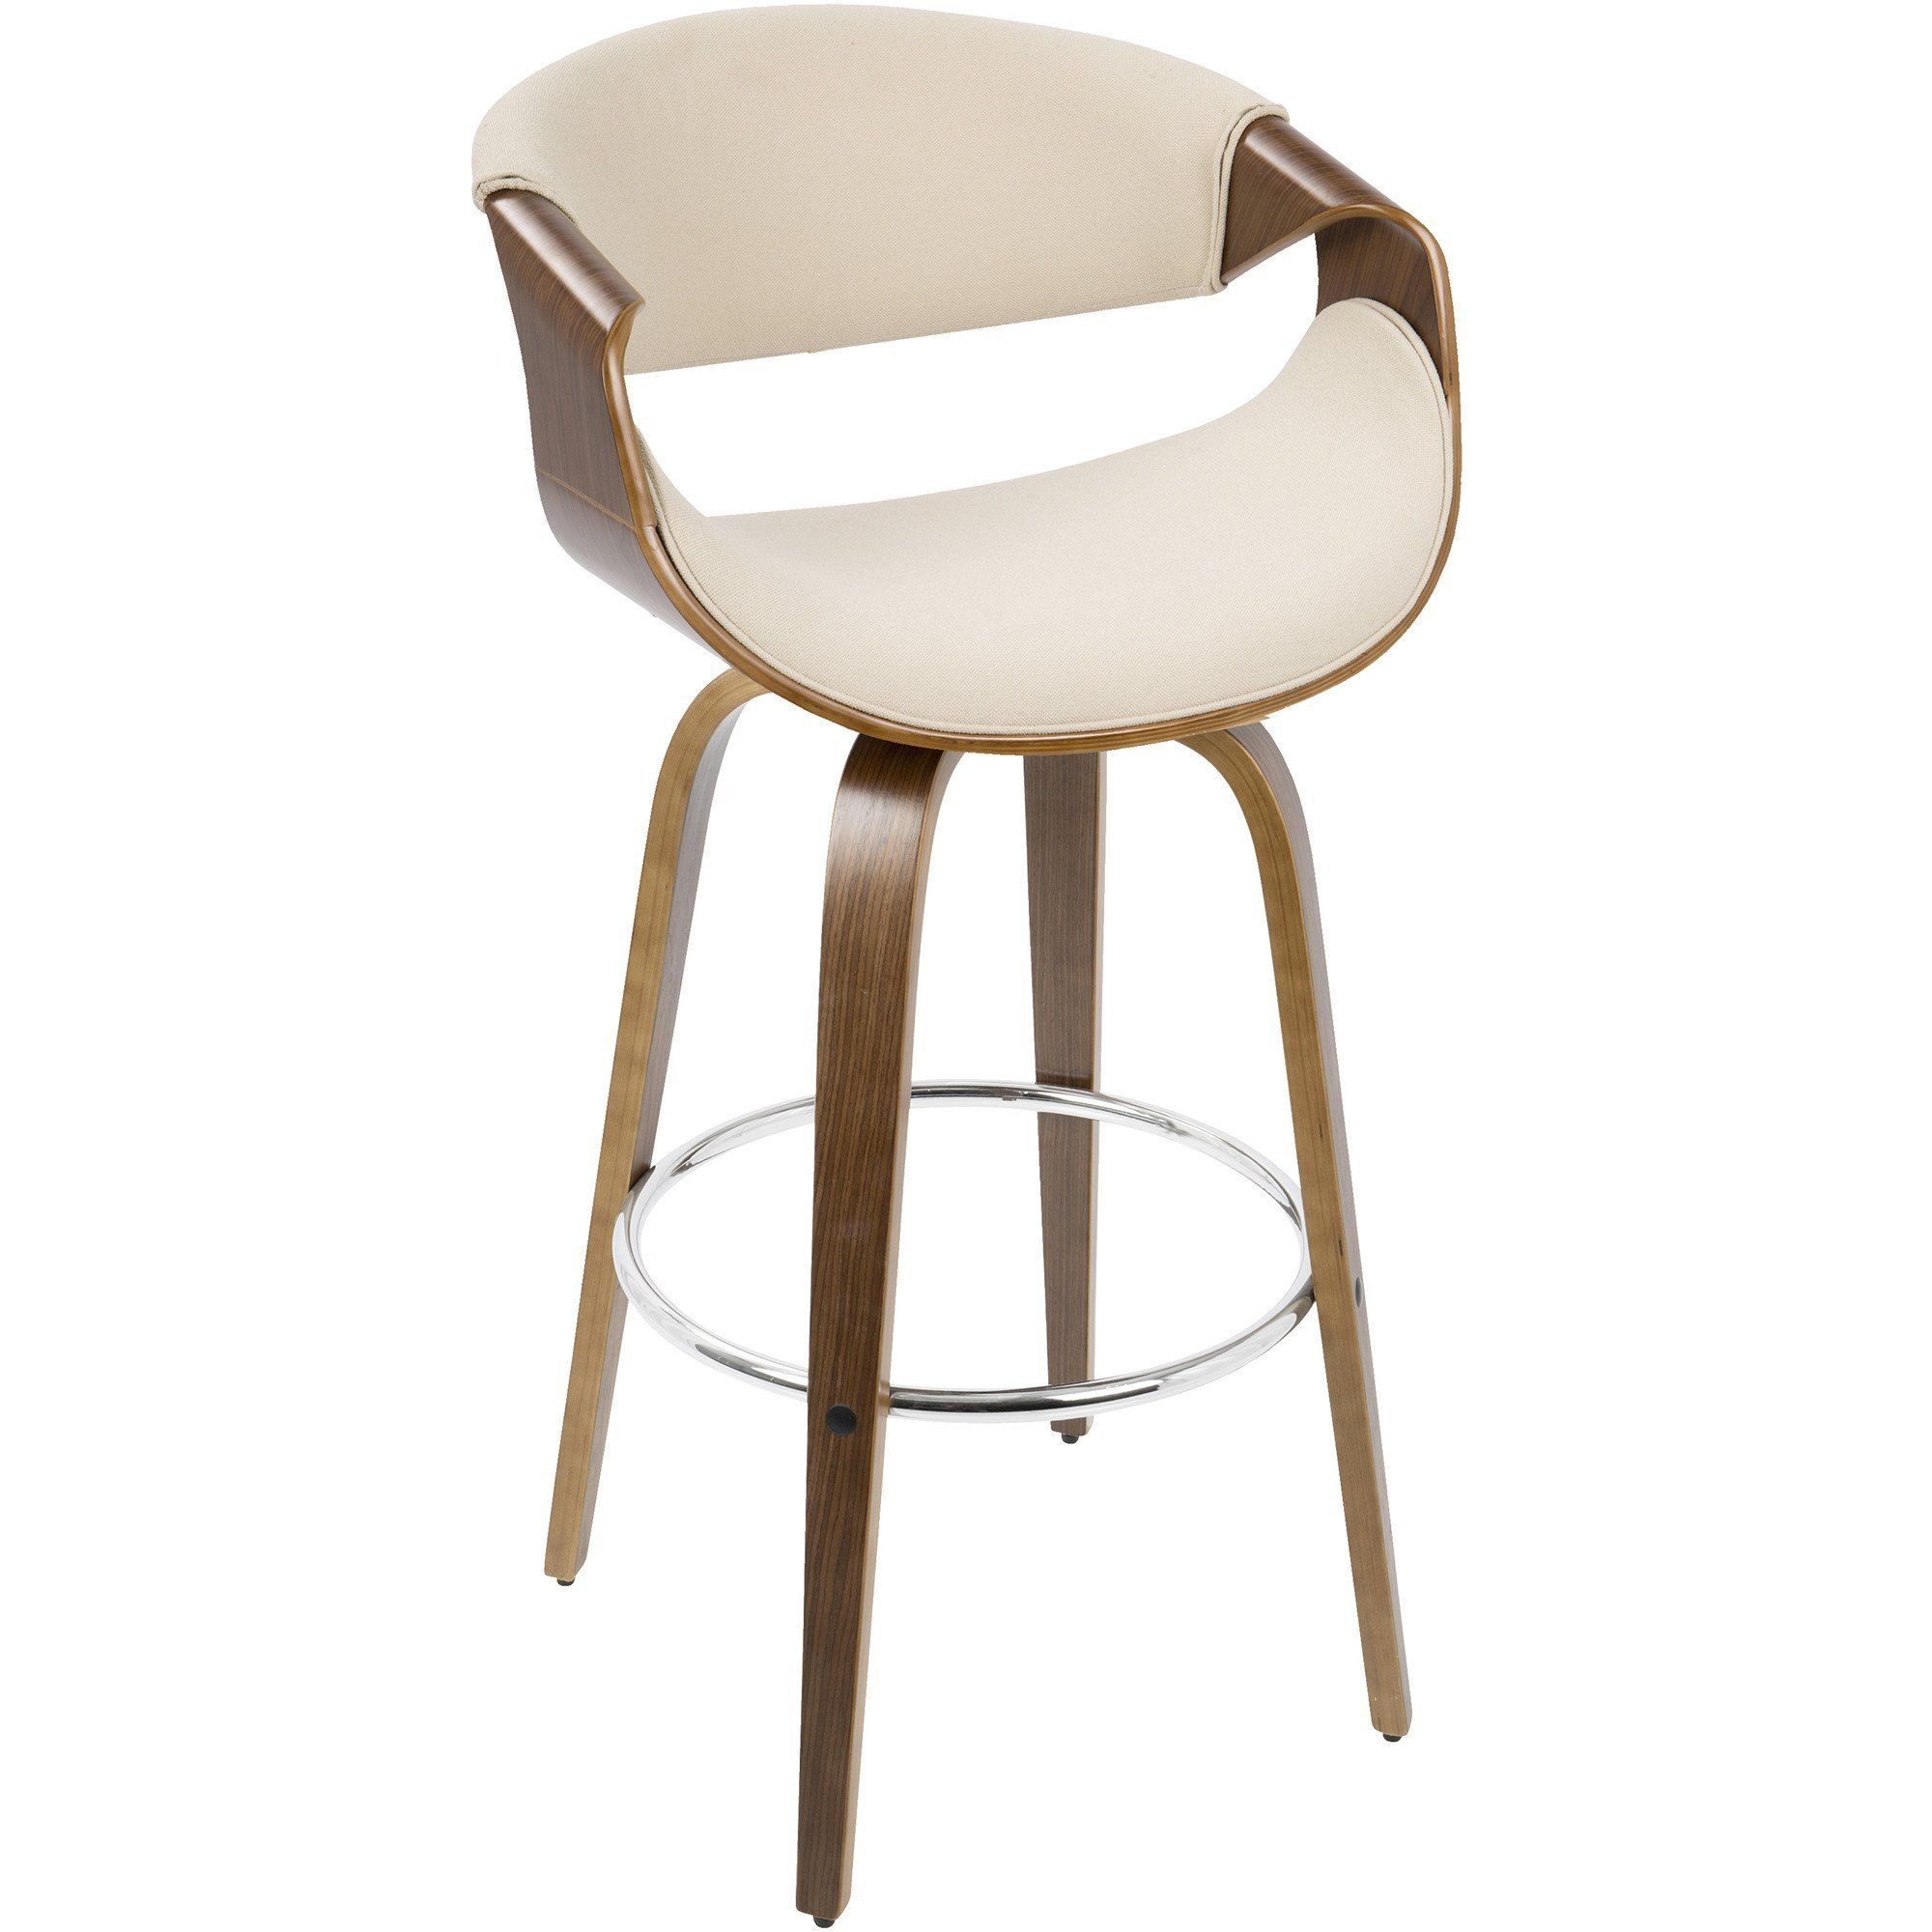 Curvini MidCentury Modern Barstool Walnut Wood u Cream Fabric